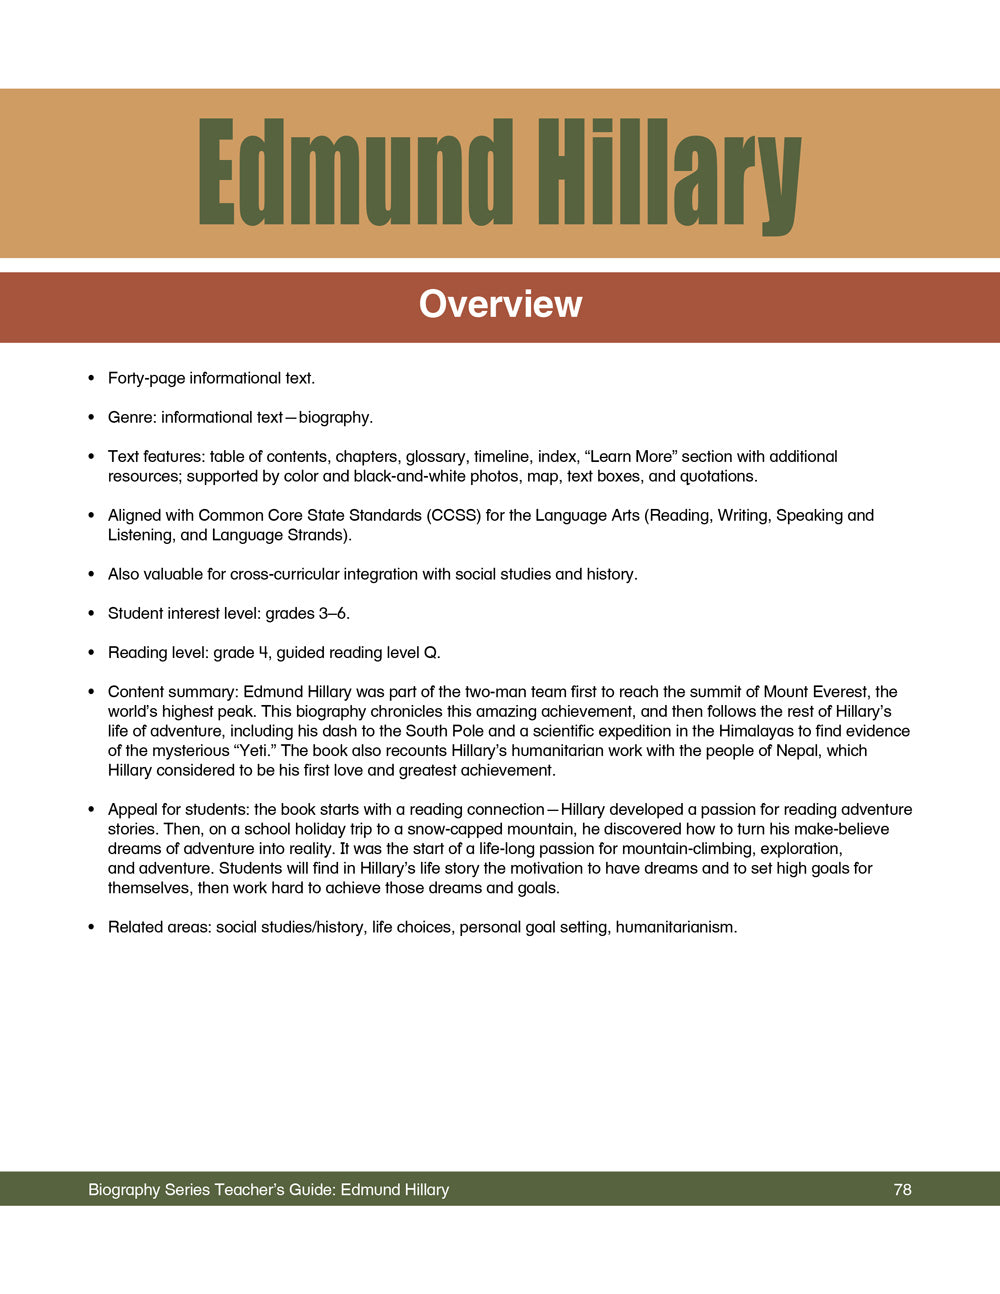 Edmund Hillary Teacher's Guide